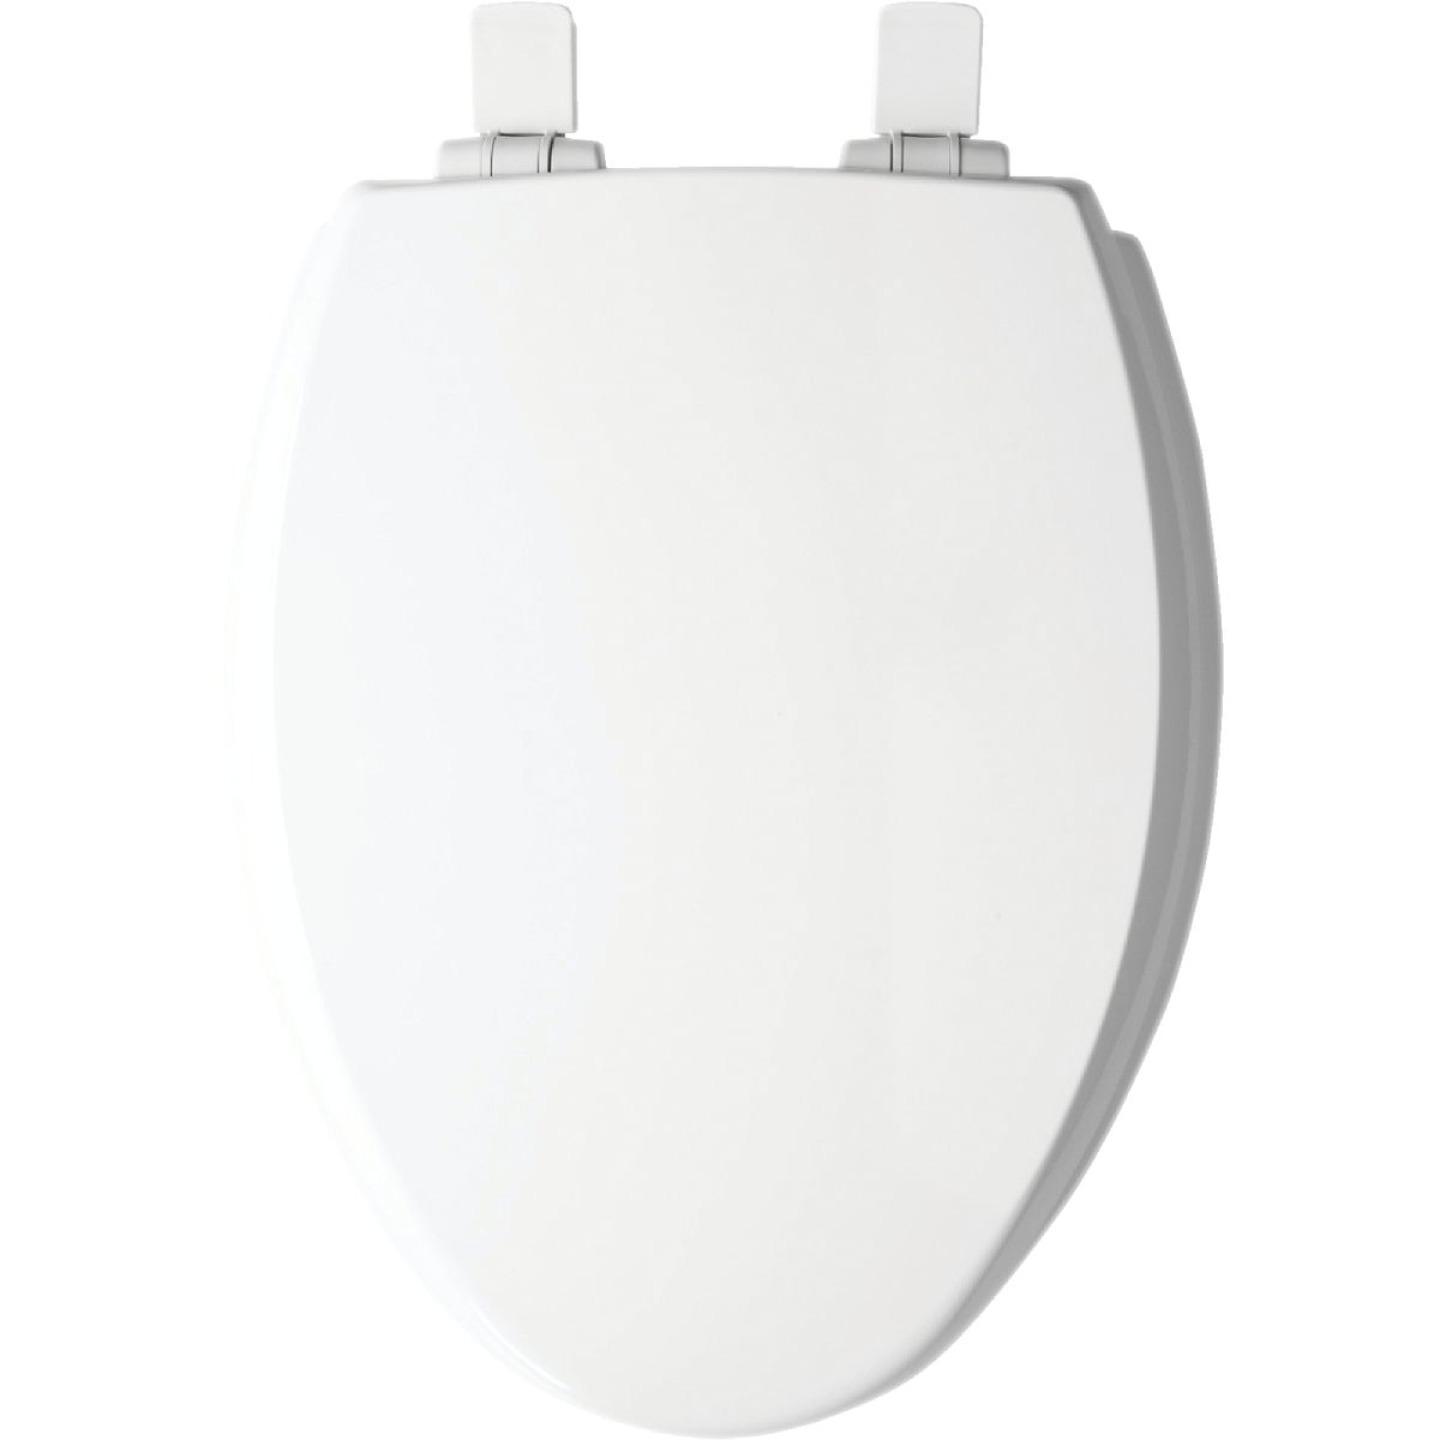 Mayfair Kendall Elongated Closed Front WhisperClose White Enameled Wood Toilet Seat Image 1